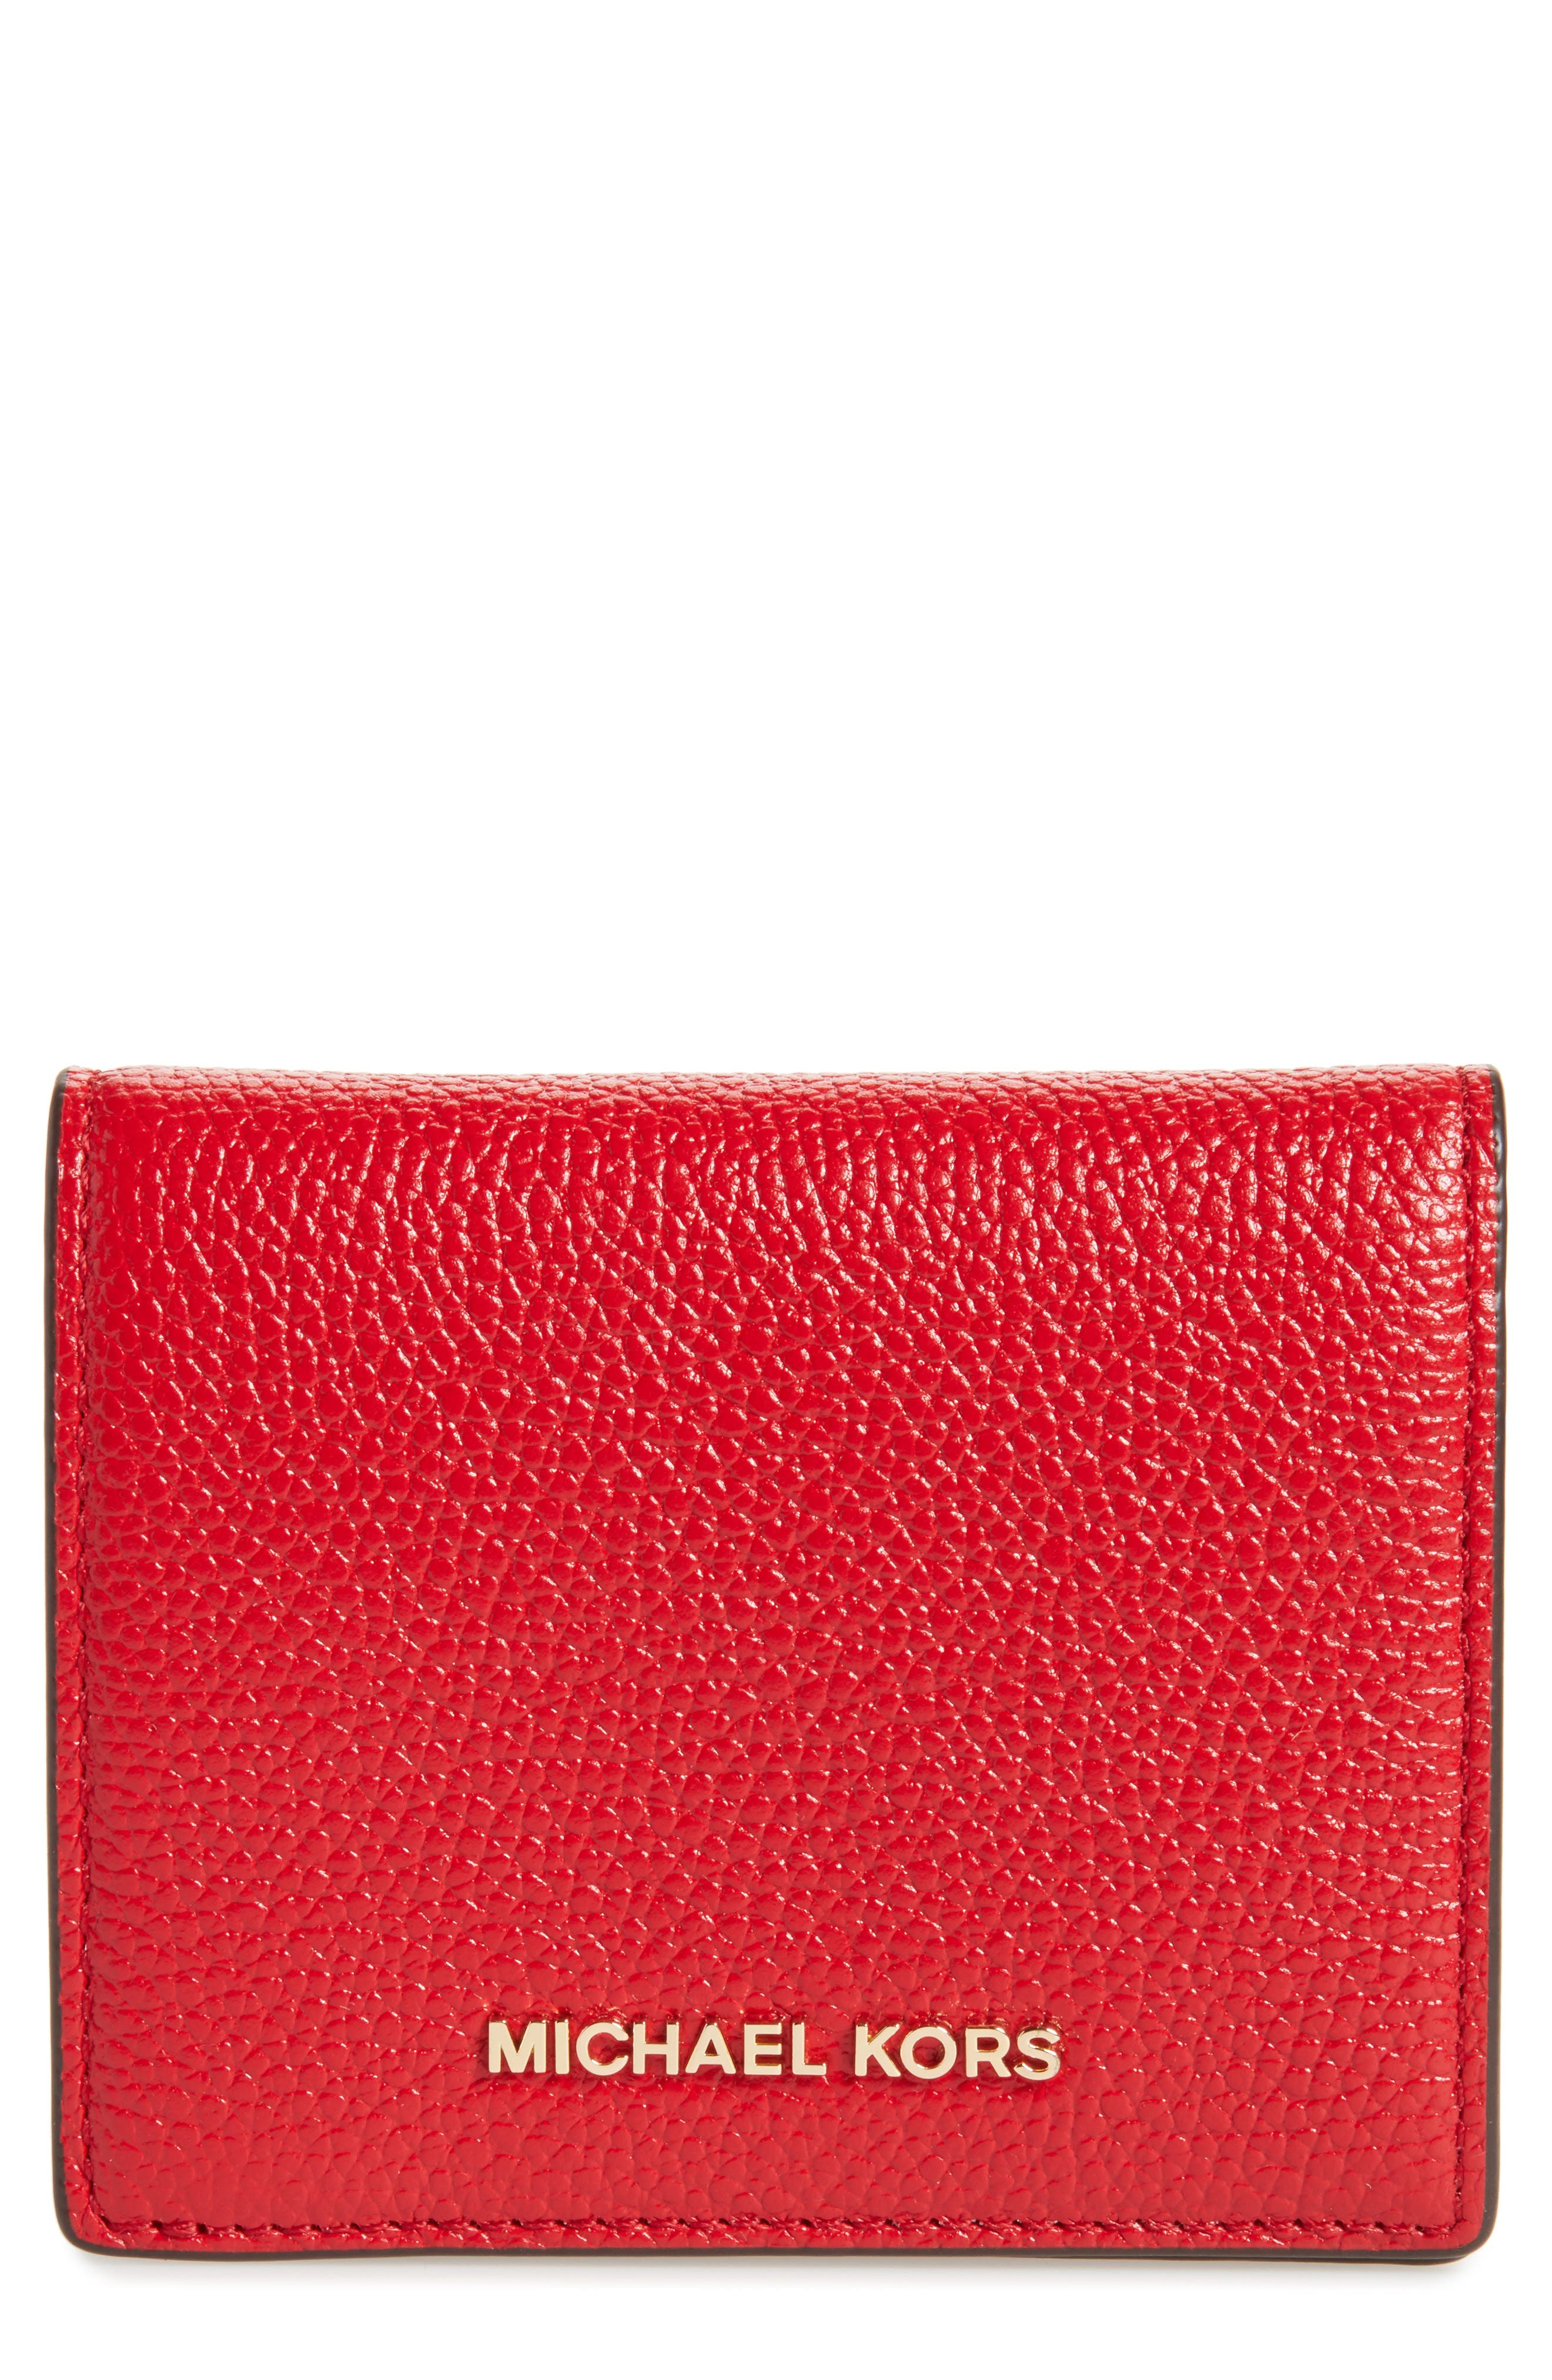 Mercer Leather RFID Card Holder,                         Main,                         color, Bright Red